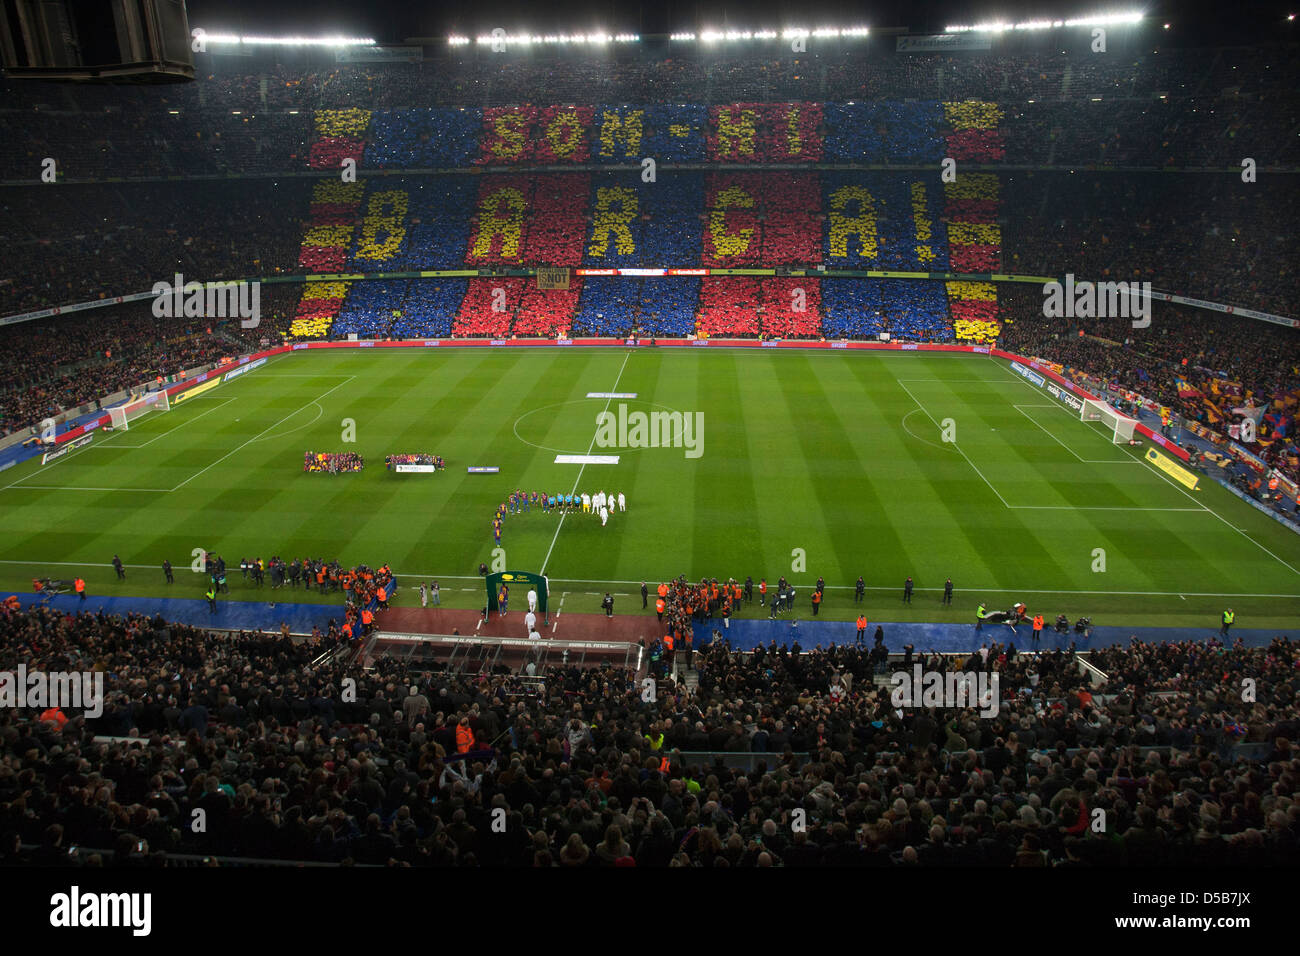 Barcelona, Spain, FC Barcelona vs Real Madrid at the Camp Nou stadium Stock Photo